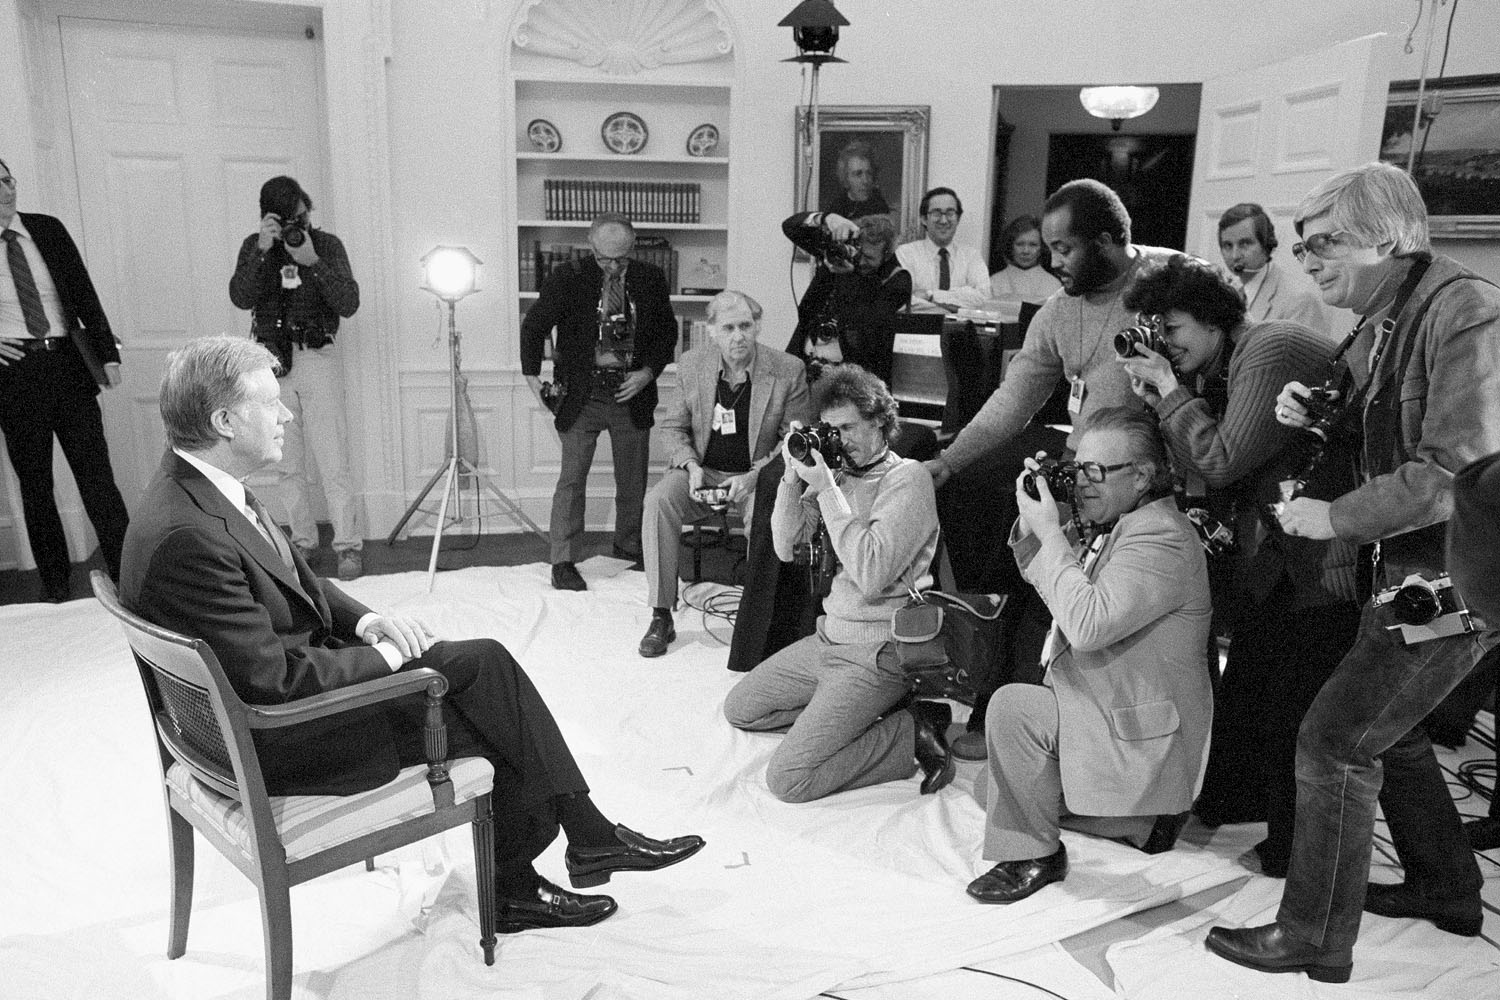 President Jimmy Carter poses for photographers in the White House January 14, 1981, just prior to delivering his farewell address on national television.